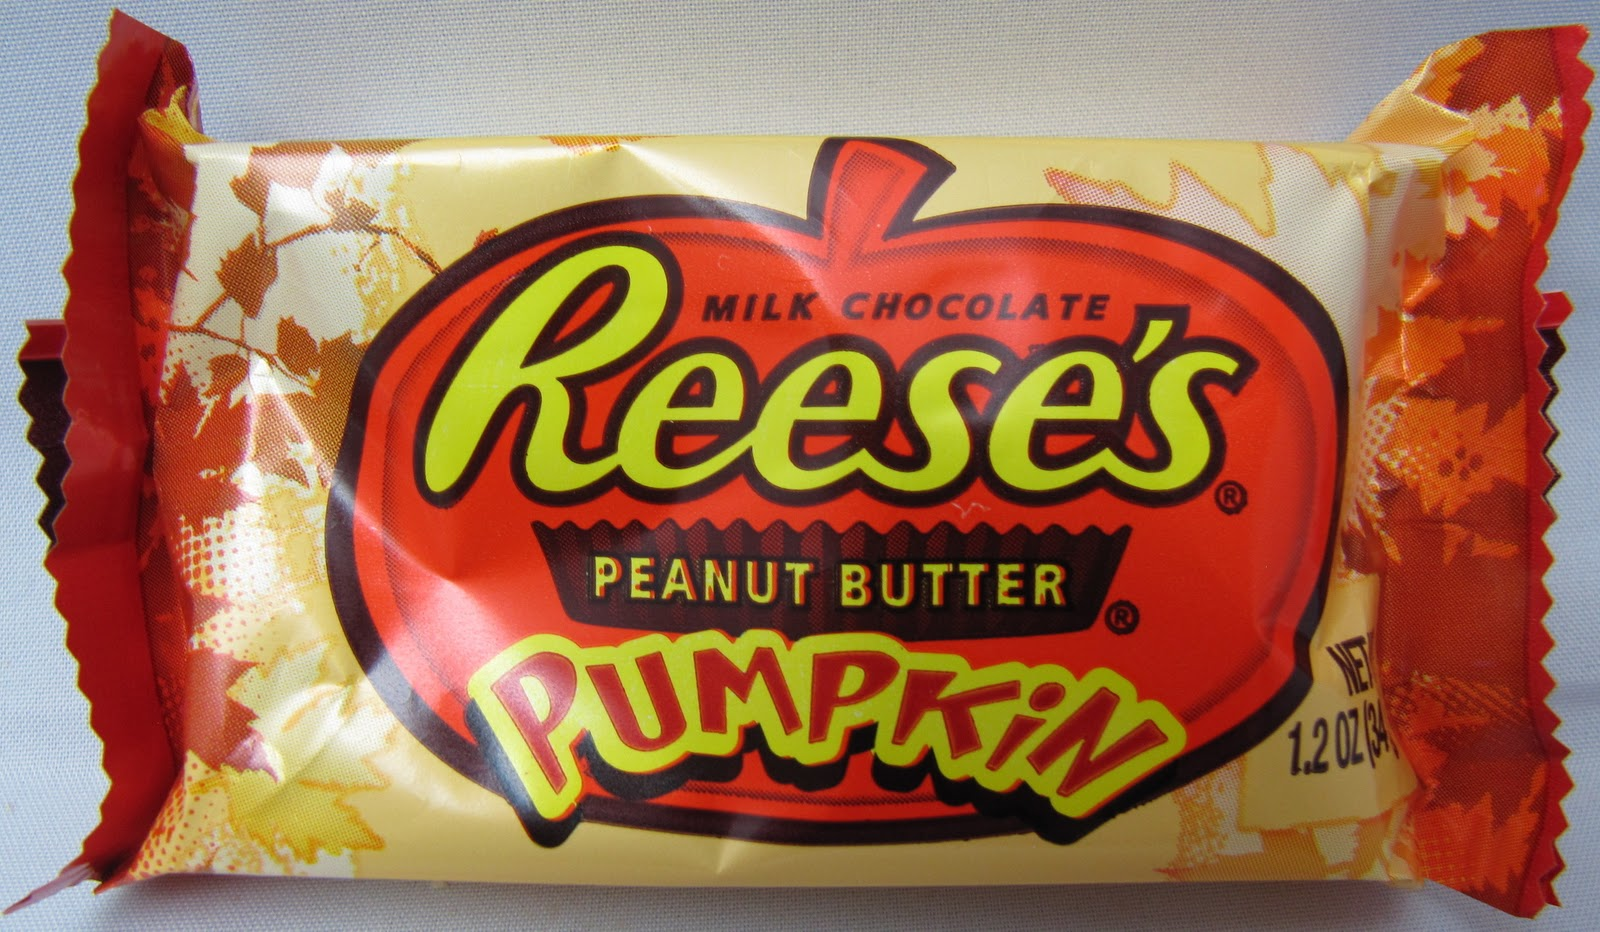 motivationchocolate: halloween and peanut butter - yay!!